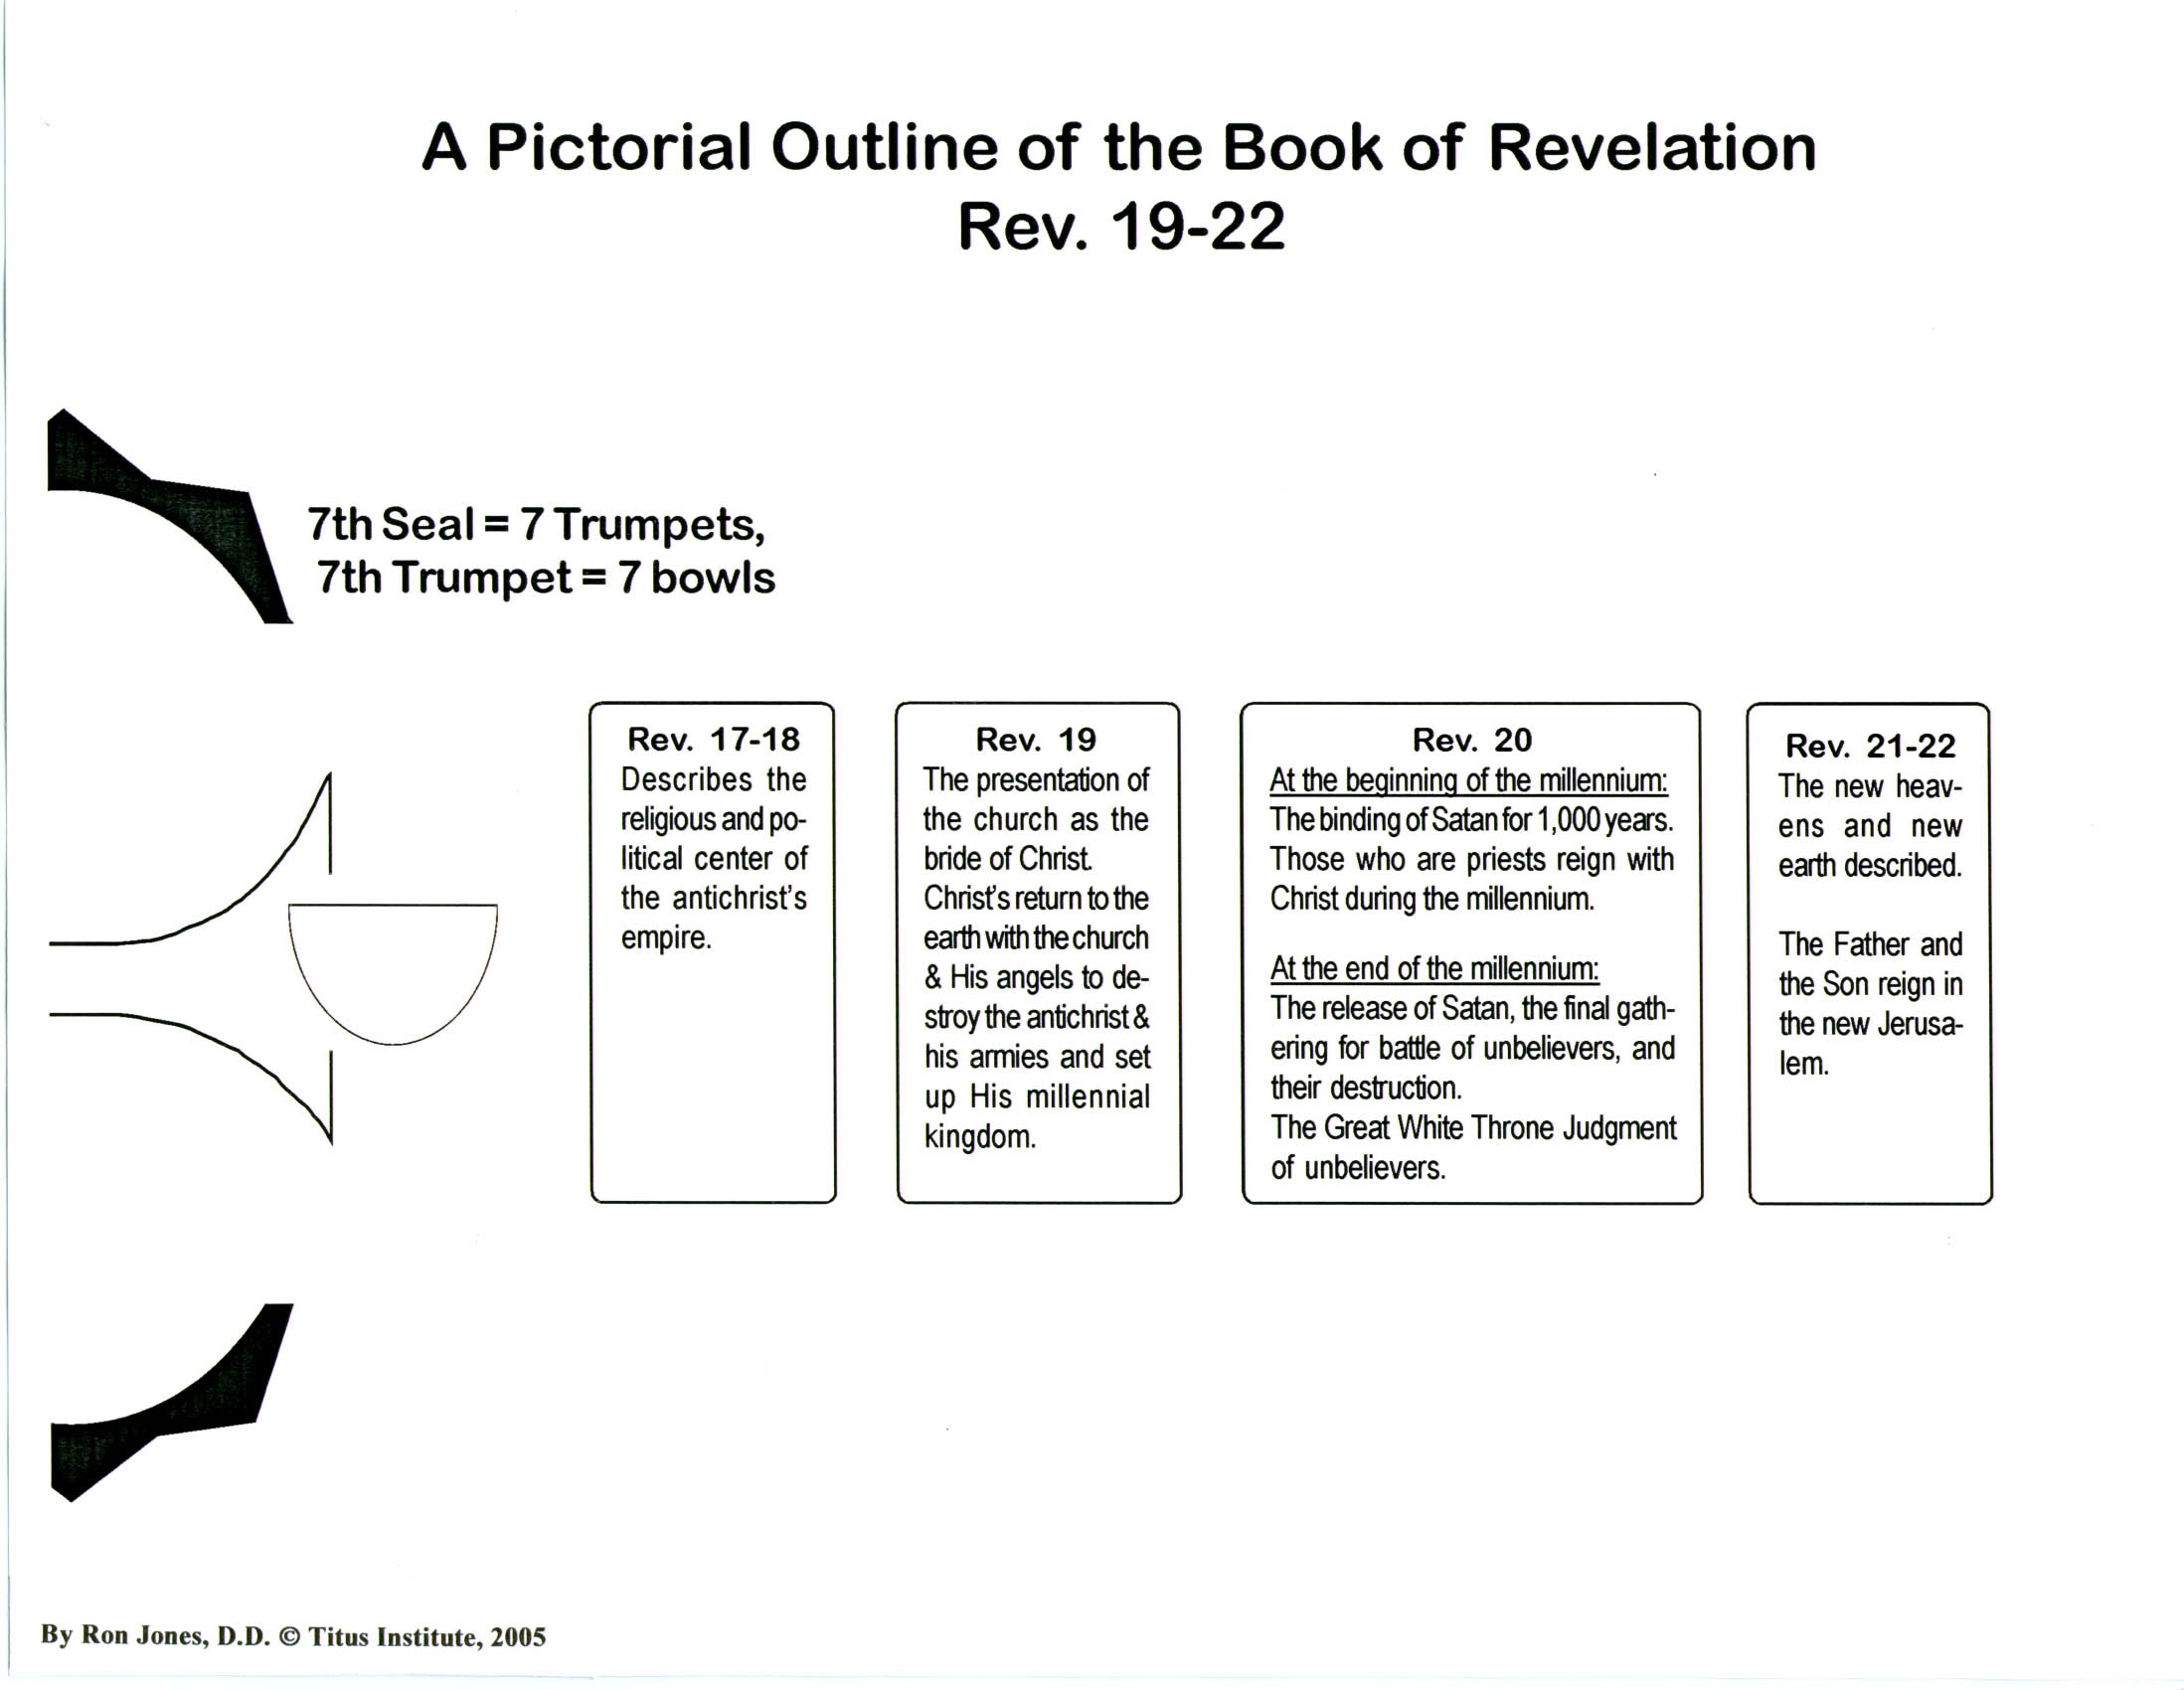 Outline of the book of revelation titus institute see pictorial outline of revelation ch19 22 chart negle Choice Image